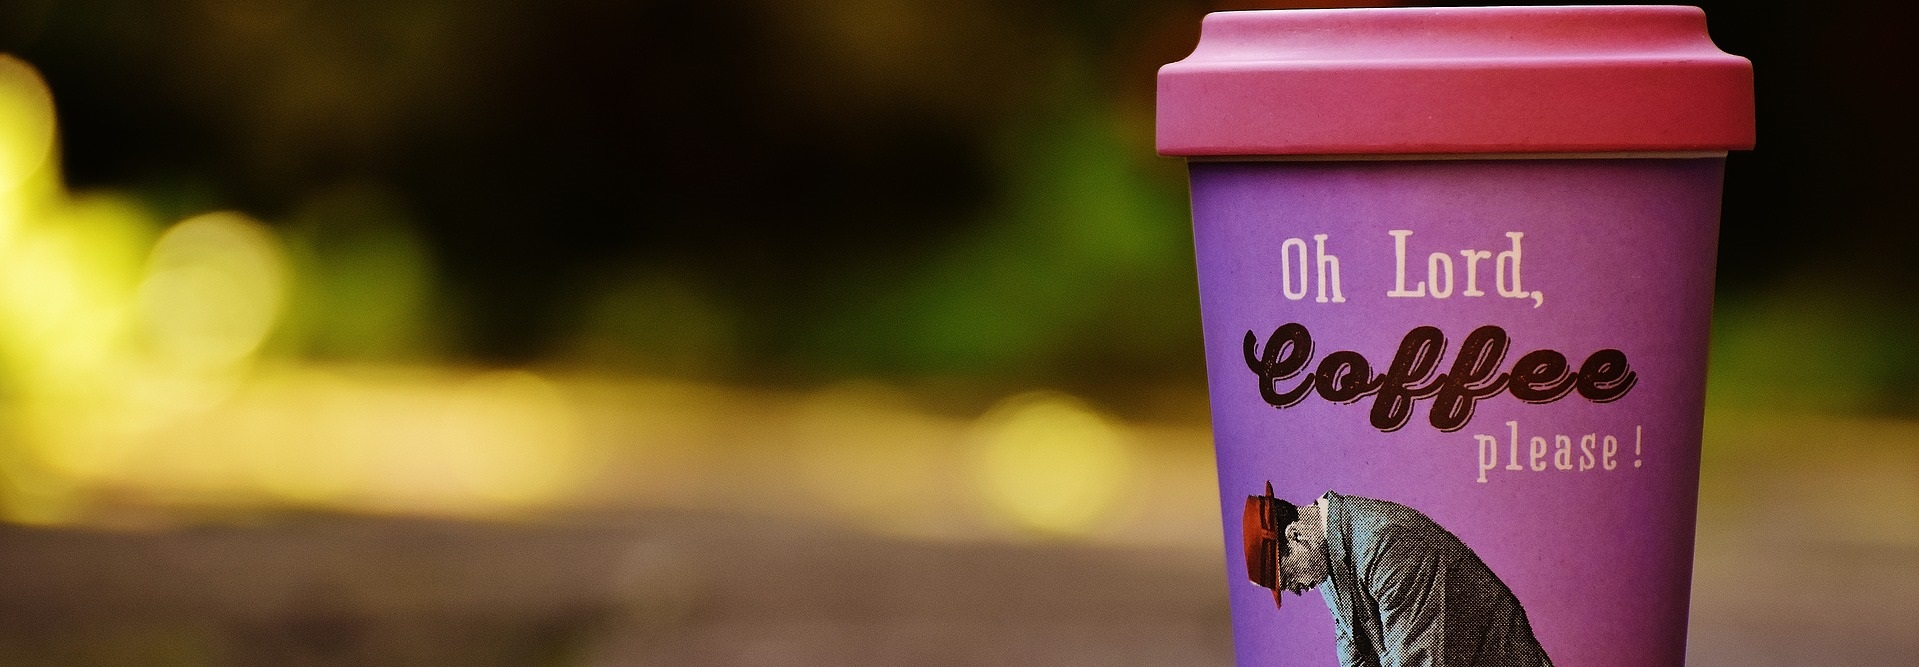 Bambus Coffee-To-Go-Becher